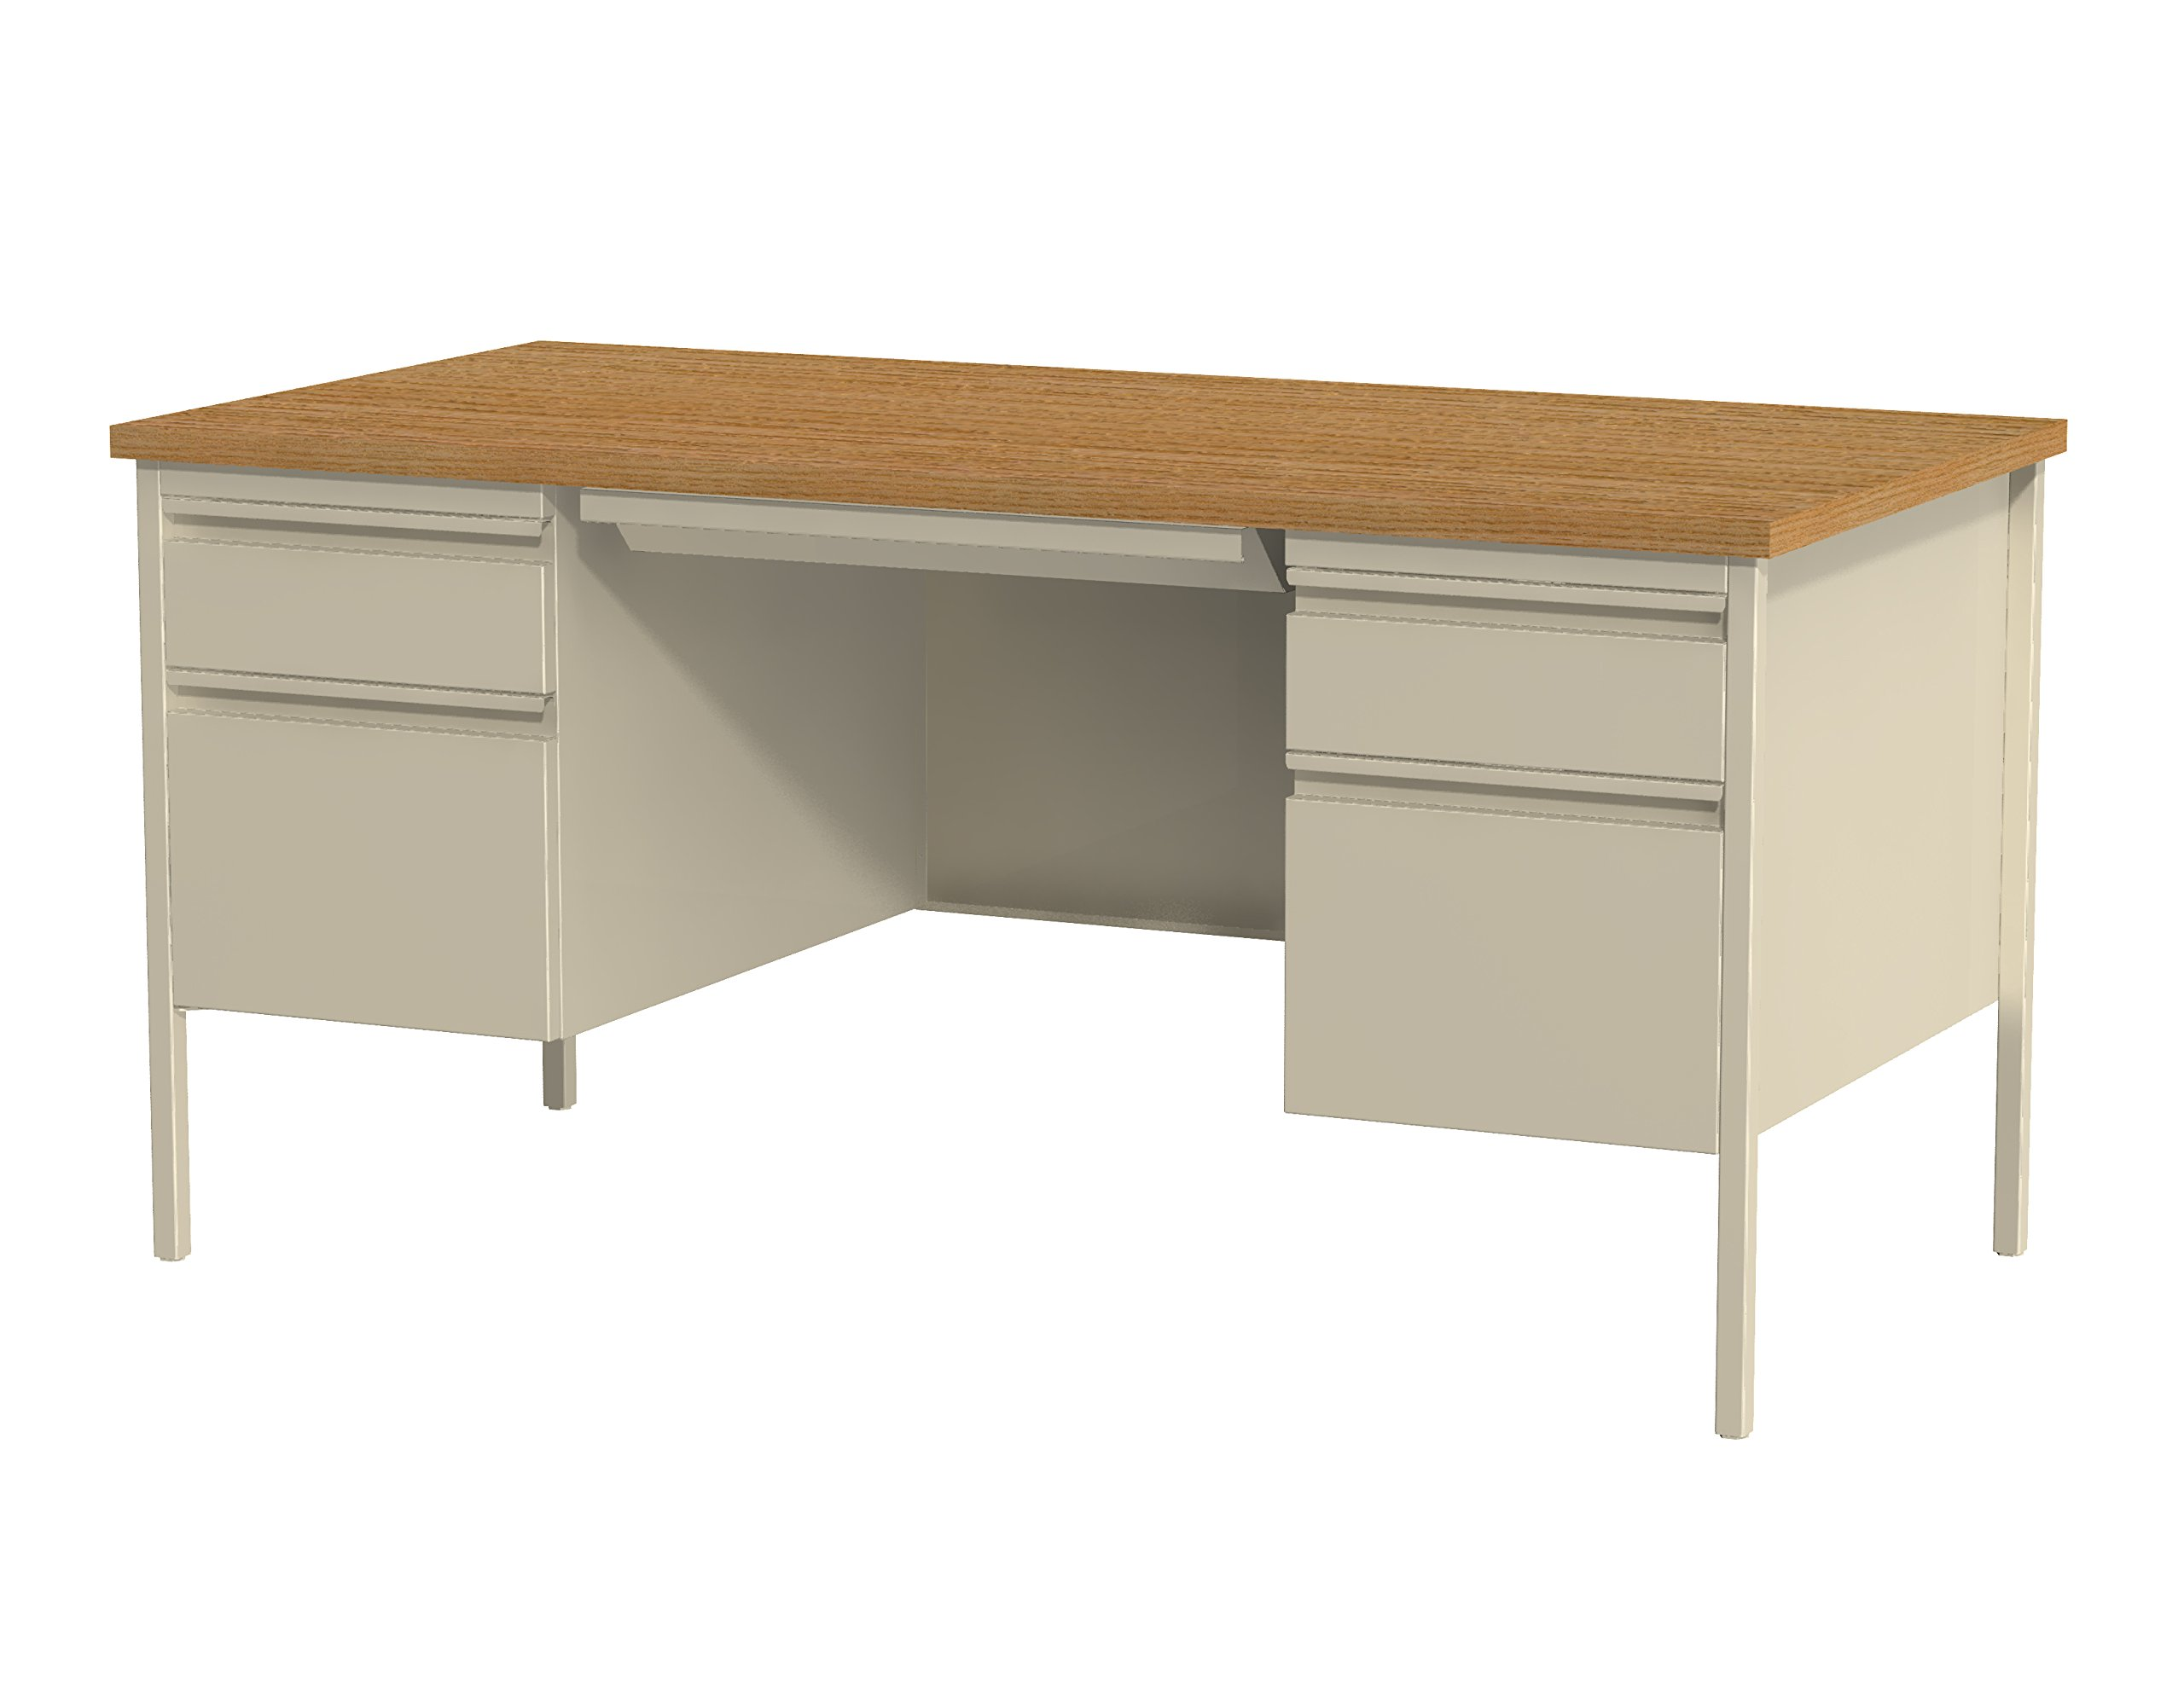 Office Dimensions Double Pedestal Office Desk with Center Drawer, 30'' D x 60'' W, Putty/Oak